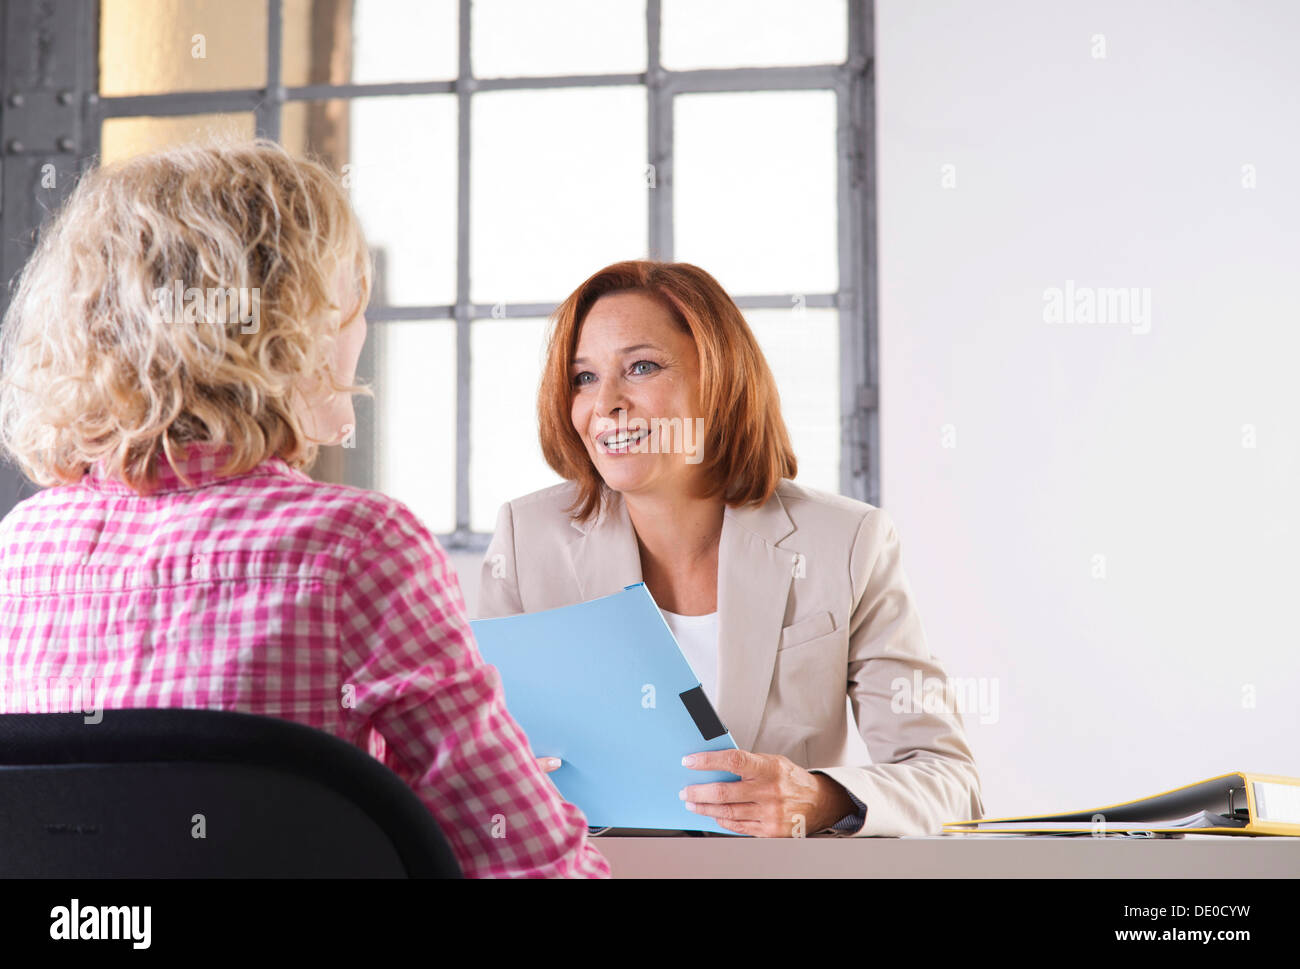 Personnel manager during an interview with a trainee Stock Photo